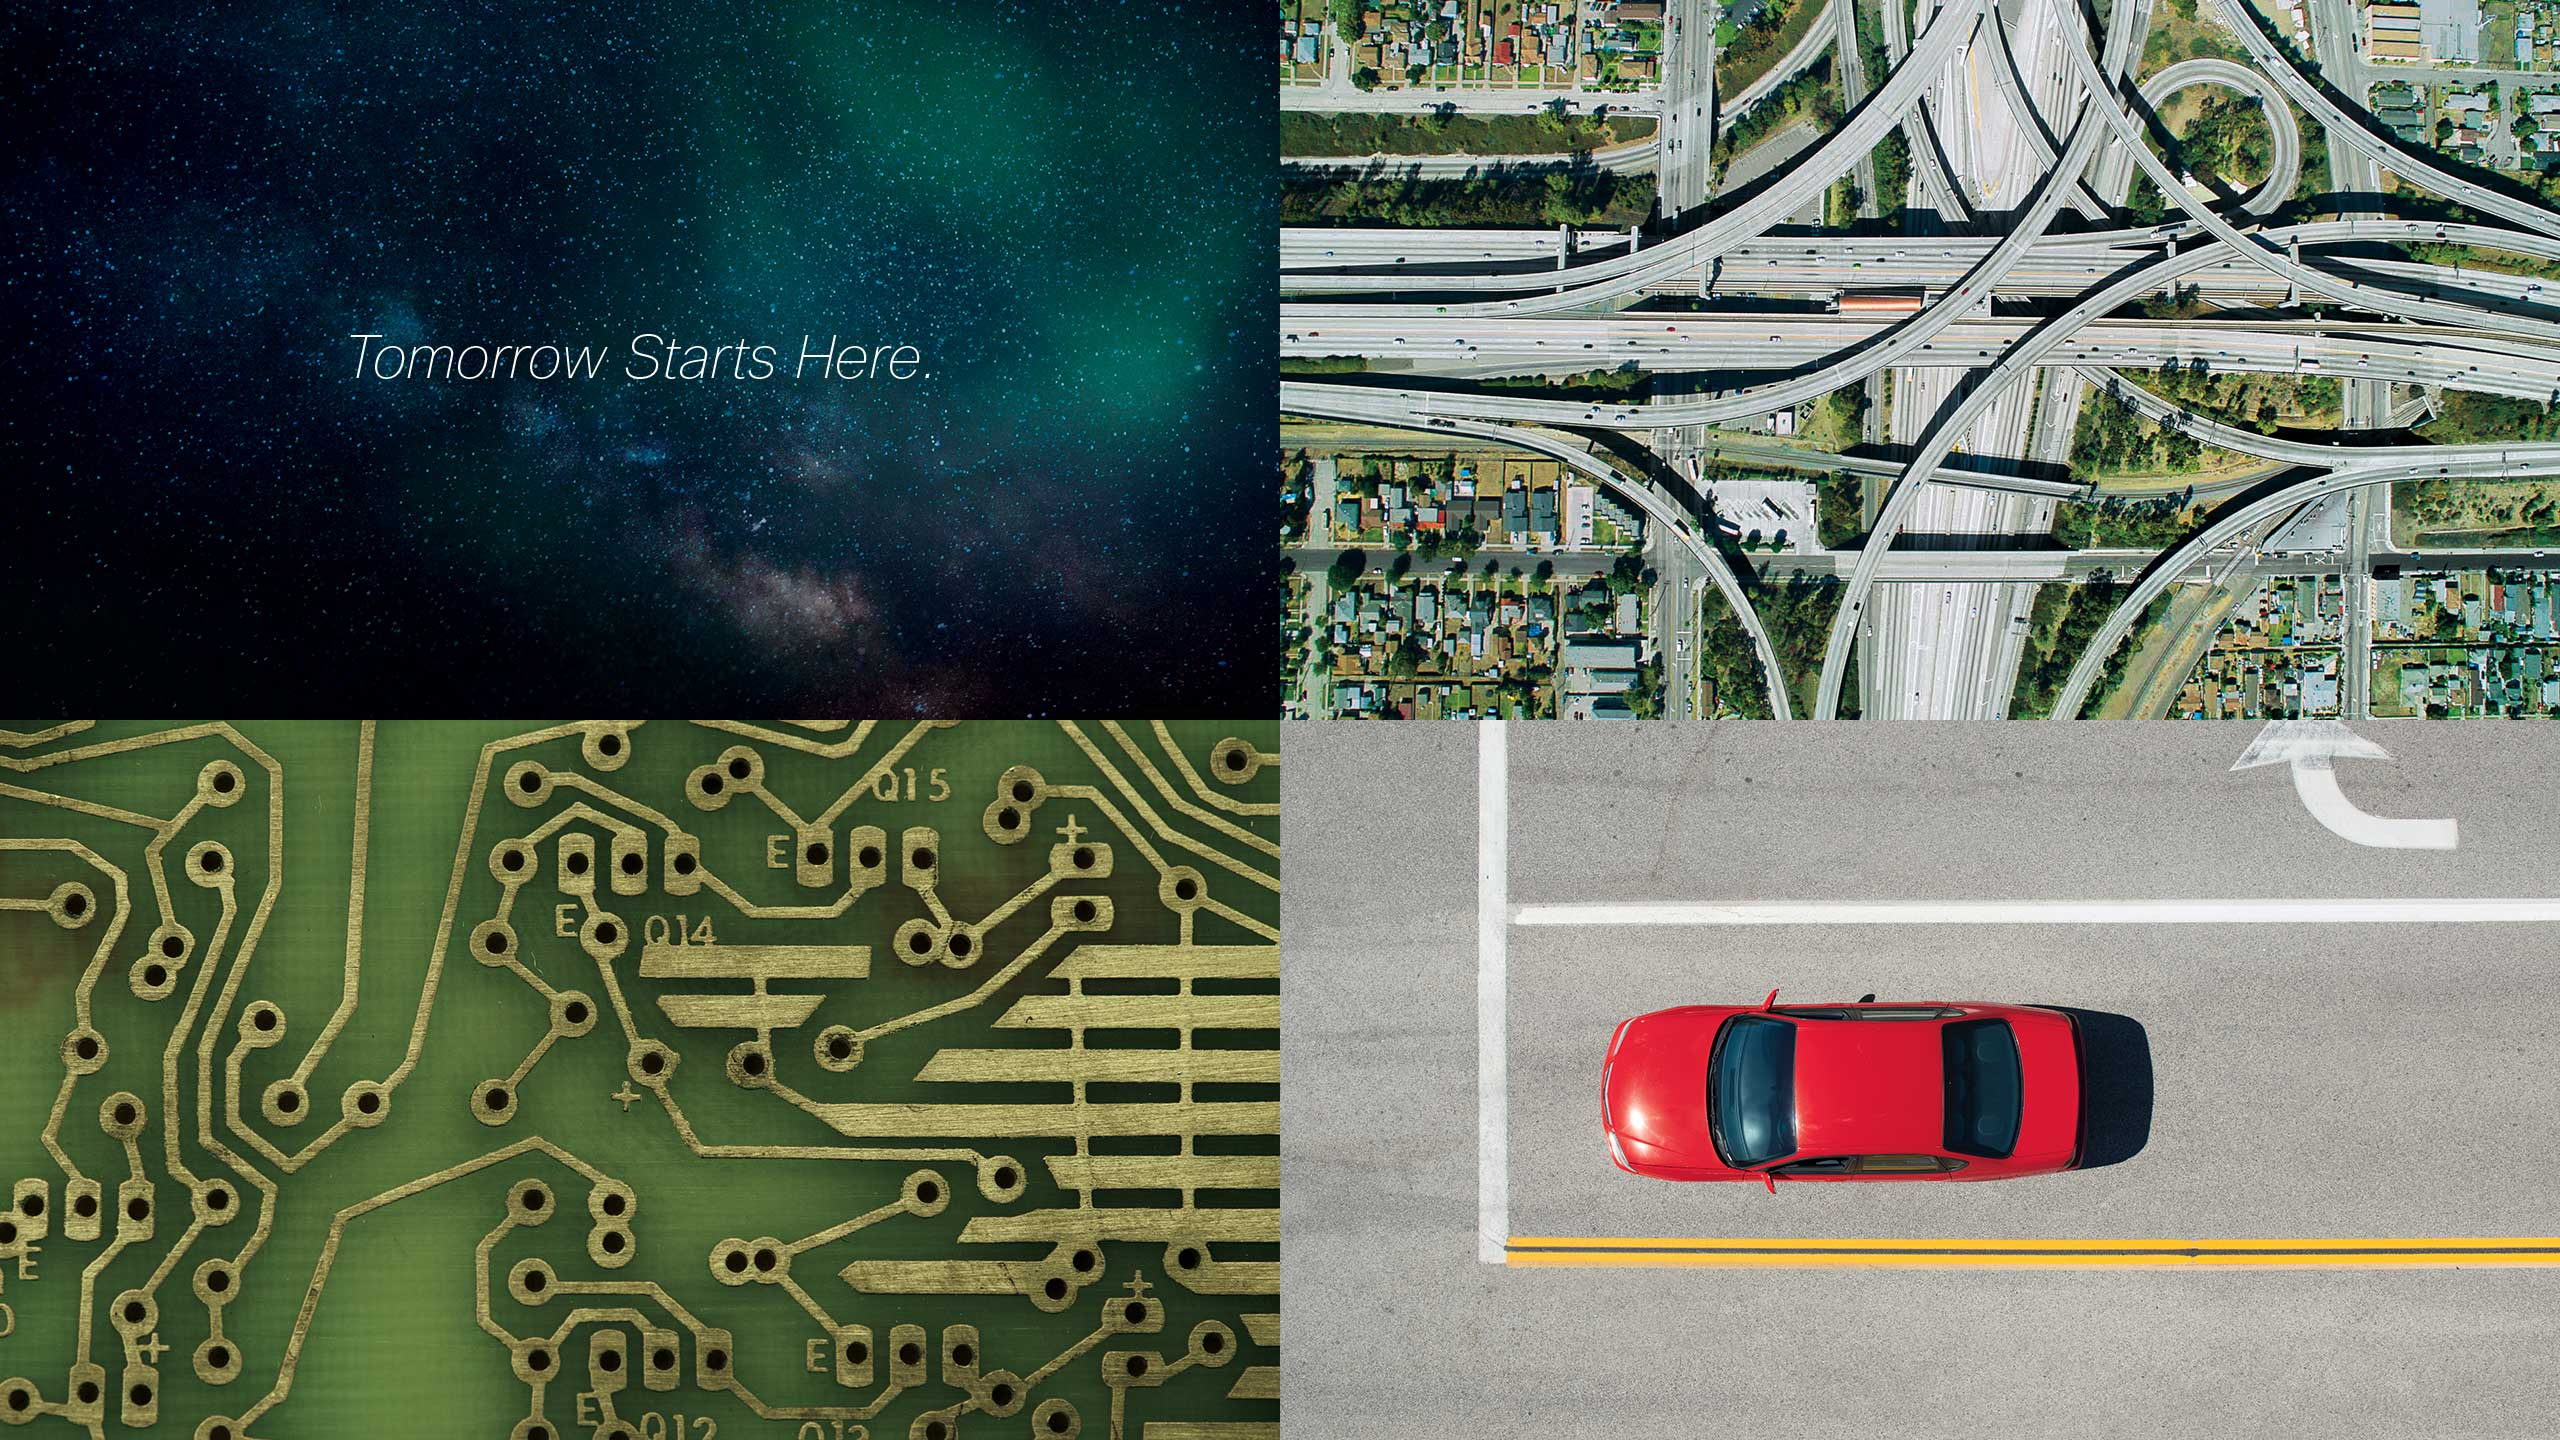 Grid of 4 Cisco Internet of Everything brand campaign images